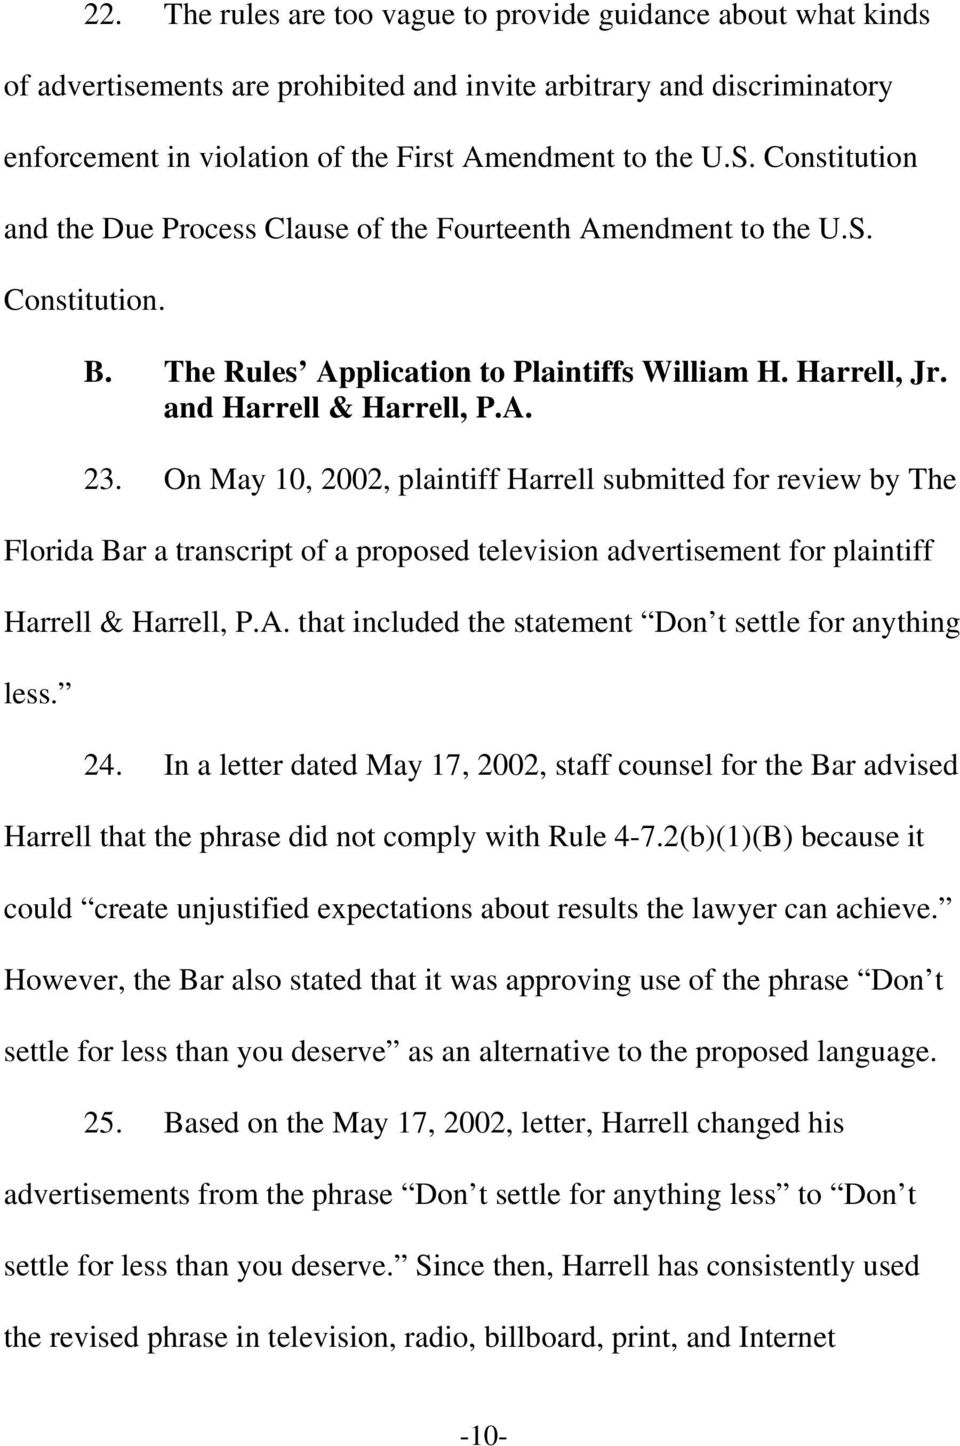 On May 10, 2002, plaintiff Harrell submitted for review by The Florida Bar a transcript of a proposed television advertisement for plaintiff Harrell & Harrell, P.A.